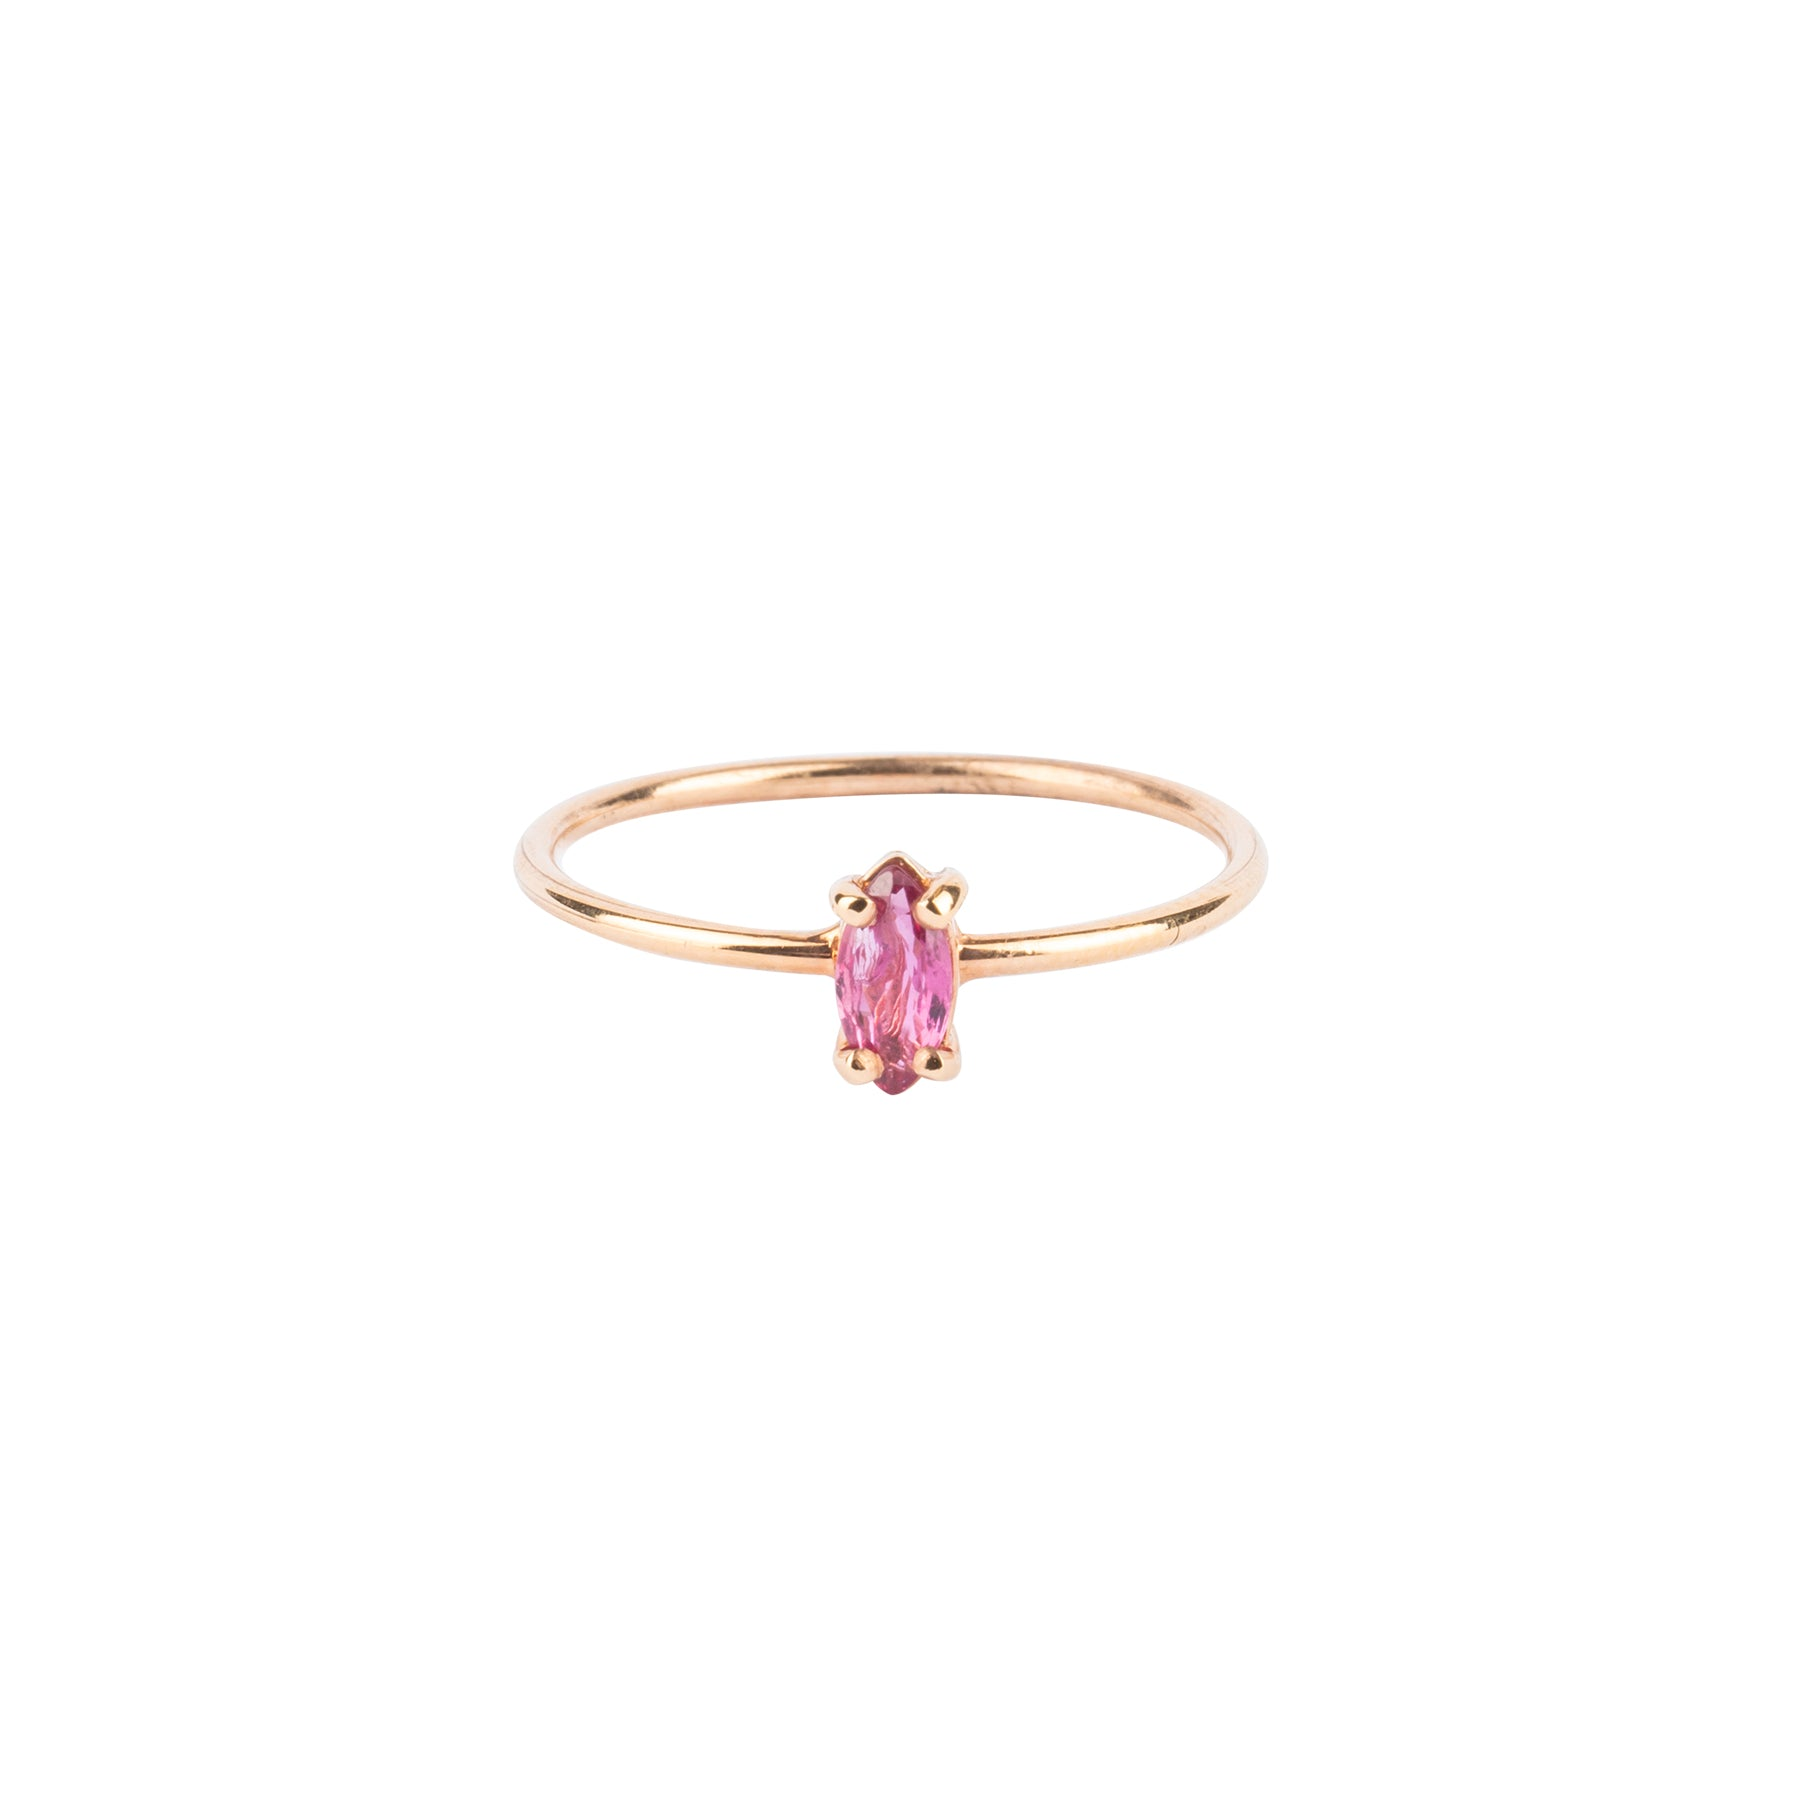 Gem Candy Tiny Marquise Pink Tourmaline Ring